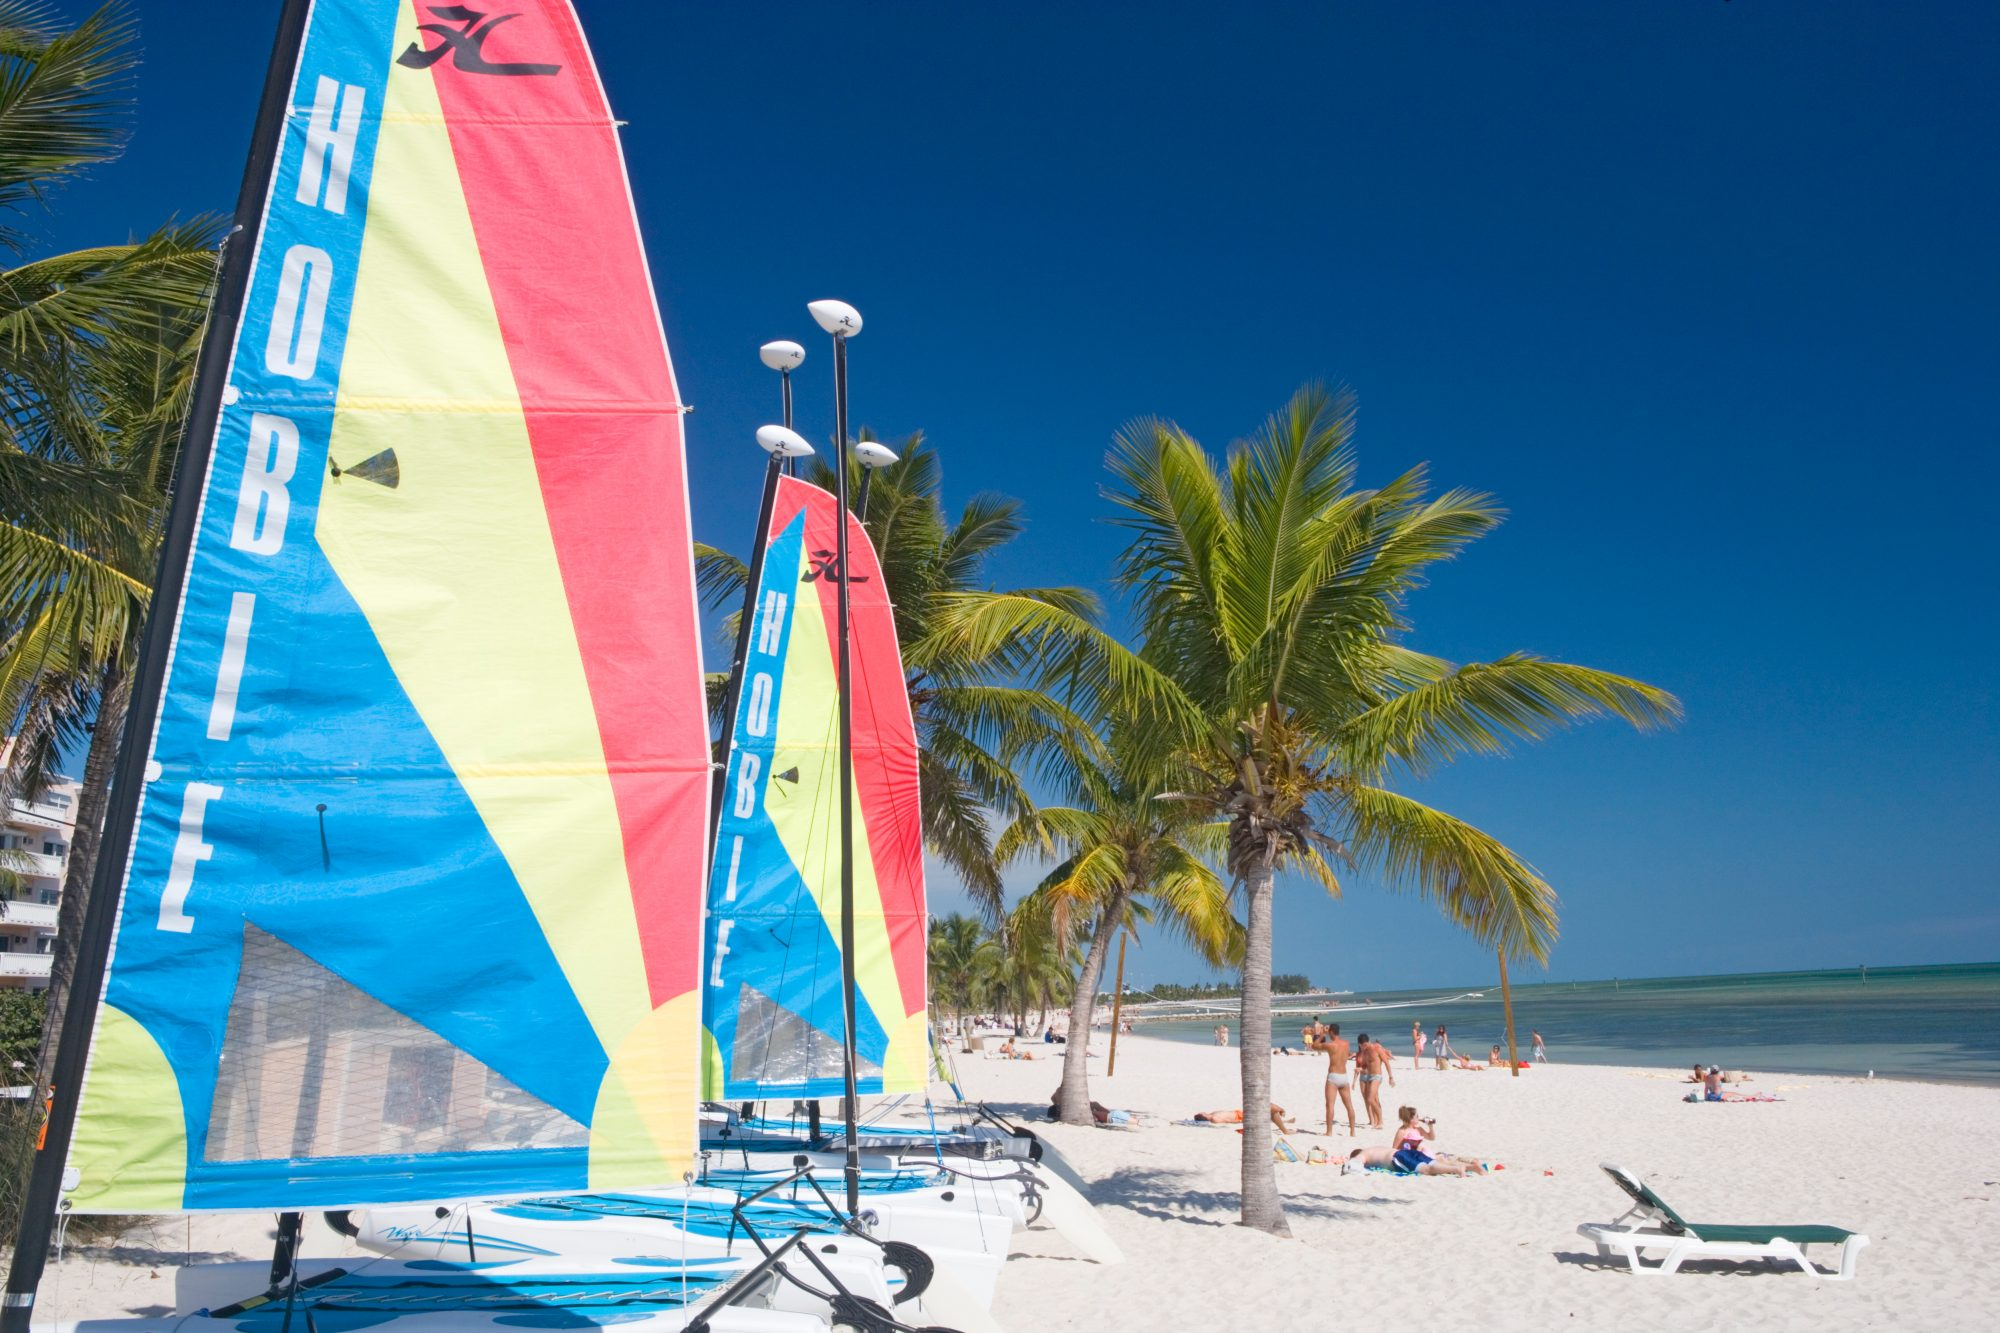 Play a game of sand volleyball, splash in the aquamarine water, take out a mini sail boat or just lounge in the sand. Smathers Beach has it all. Sunset Watersports Key West offers chairs, umbrellas, rafts, and more starting at $10 per day.